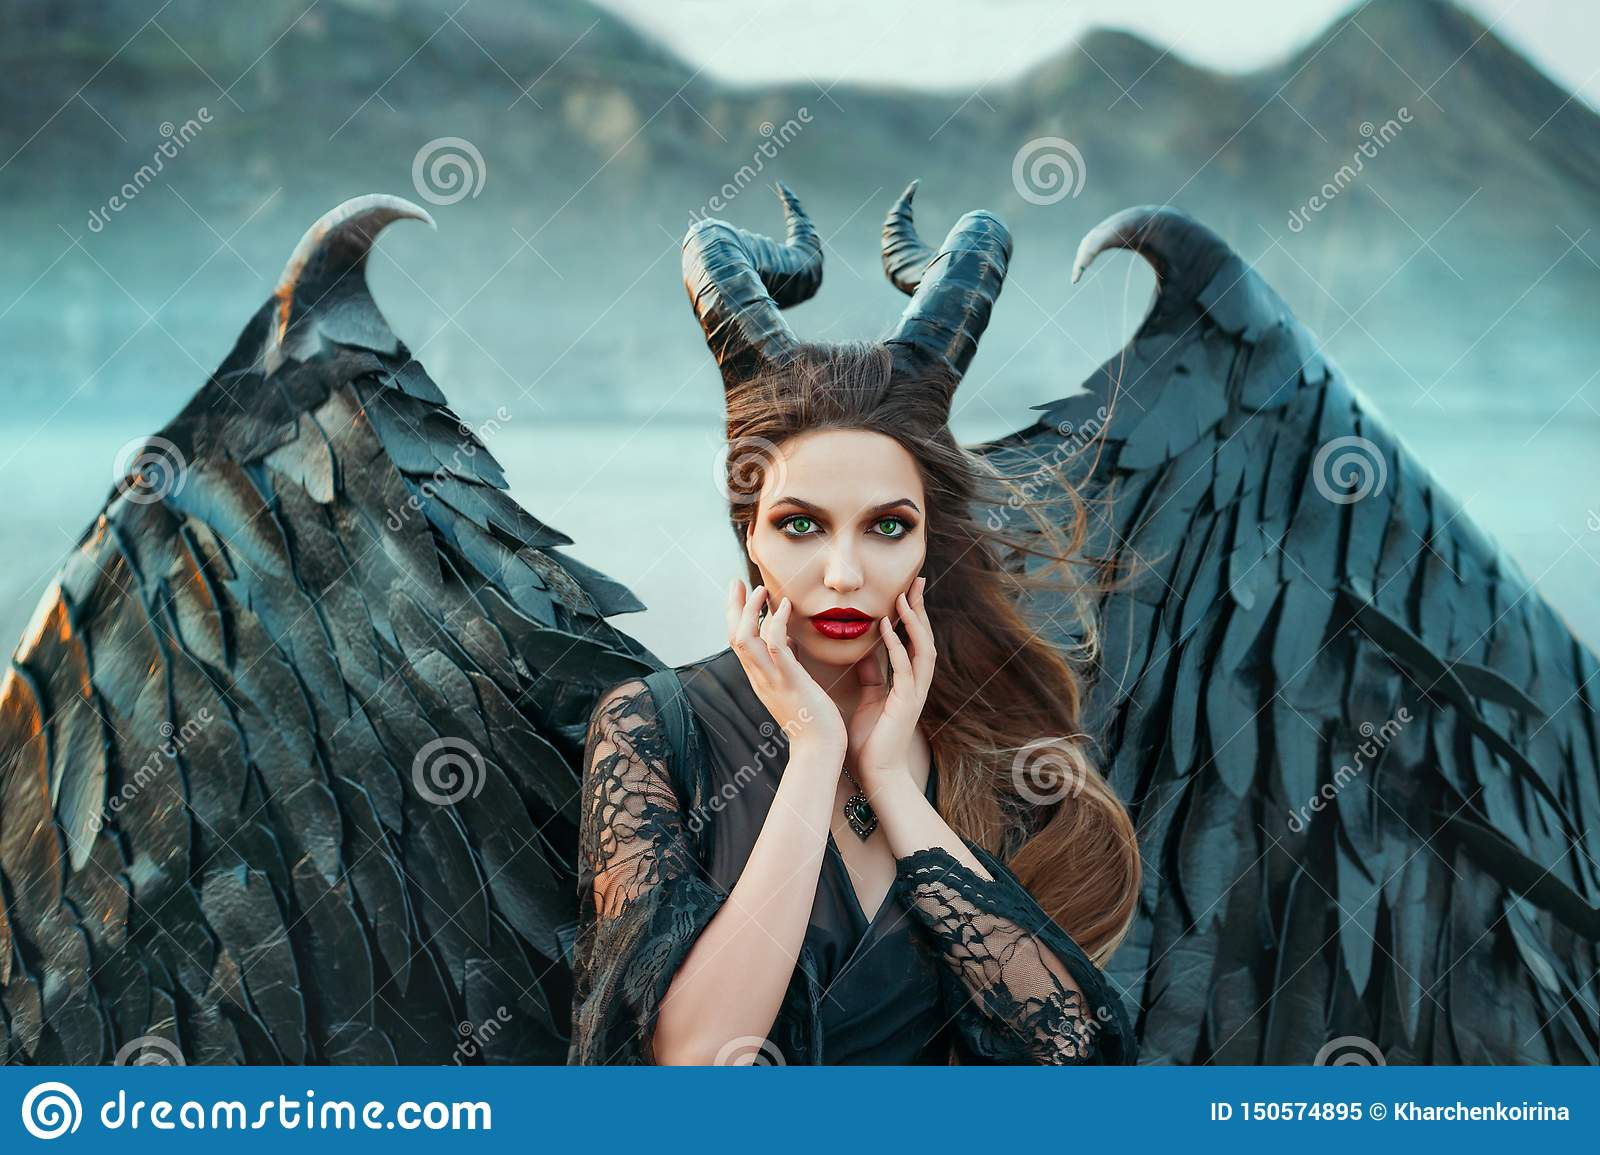 Charming portrait of dark angel with sharp horns and claws on strong powerful wings, wicked witch in black lace dress